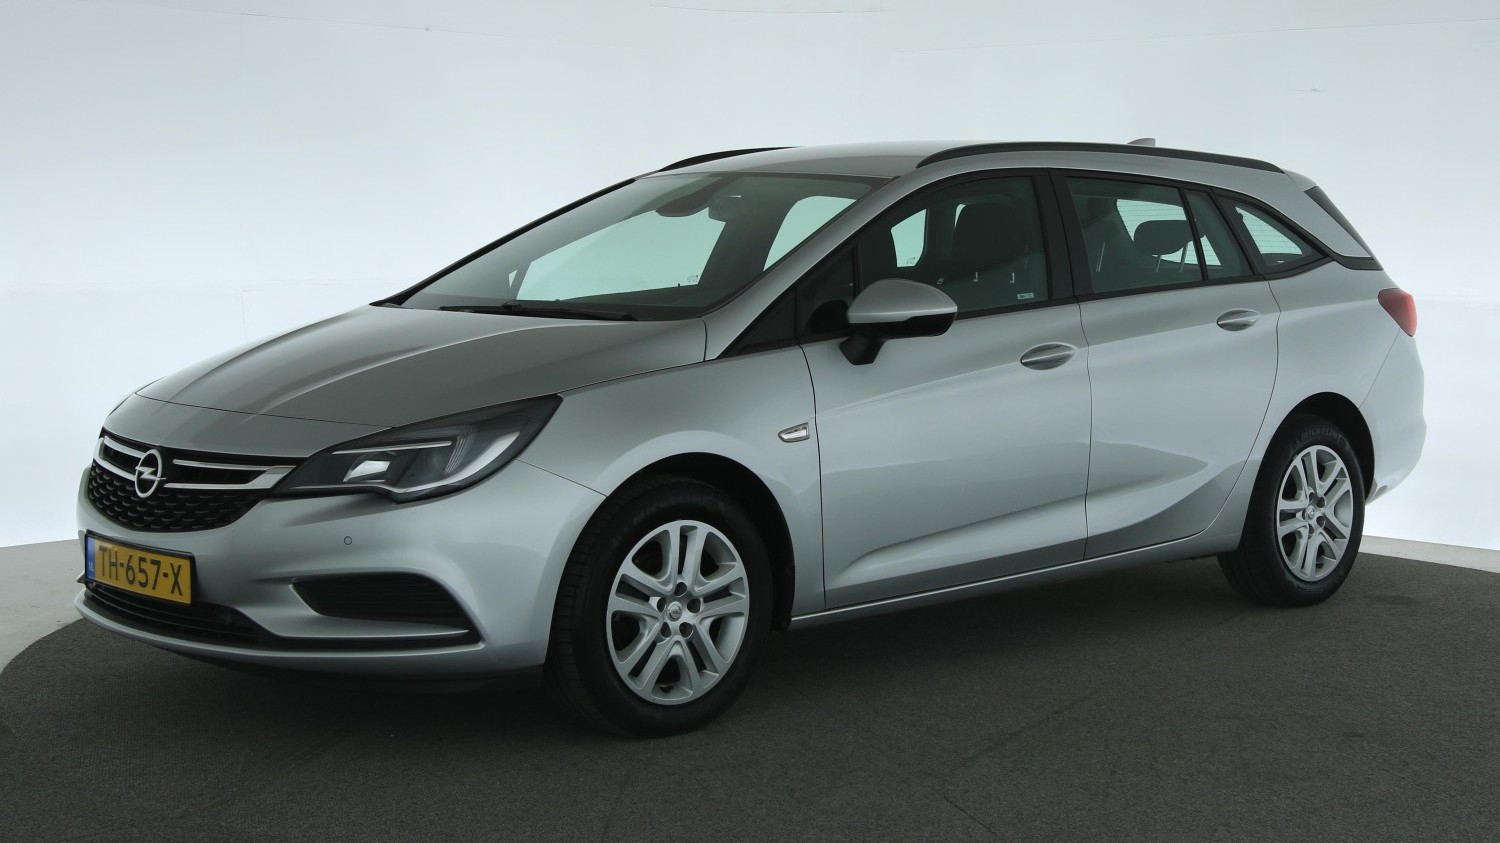 Opel Astra Station 2018 TH-657-X 1